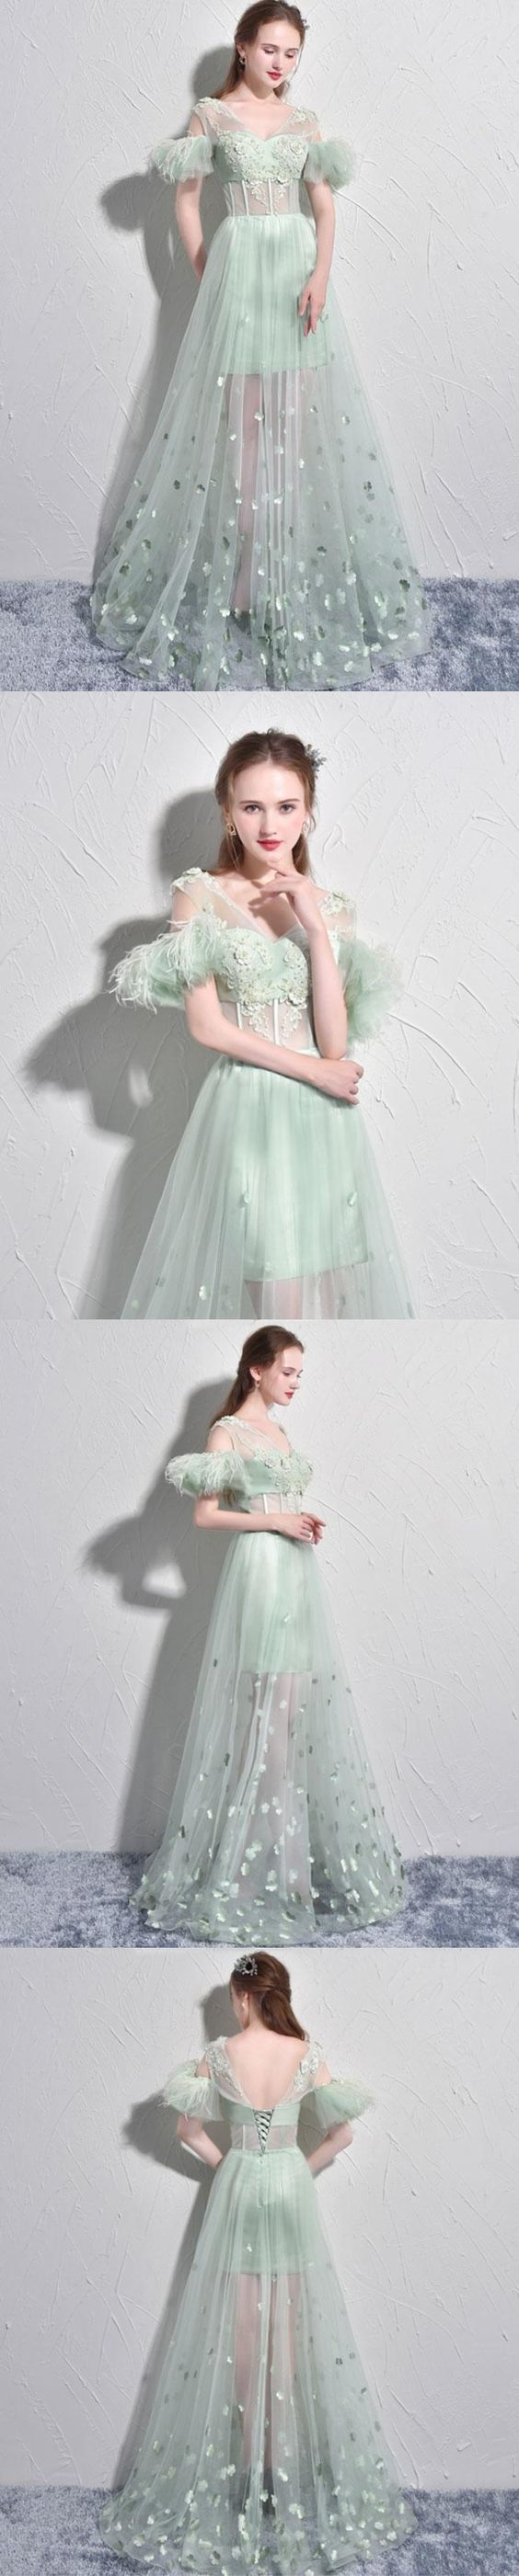 Sexy Prom Dresses A-line Short Sleeve Sage Long Prom Dress Tulle Evening Dress